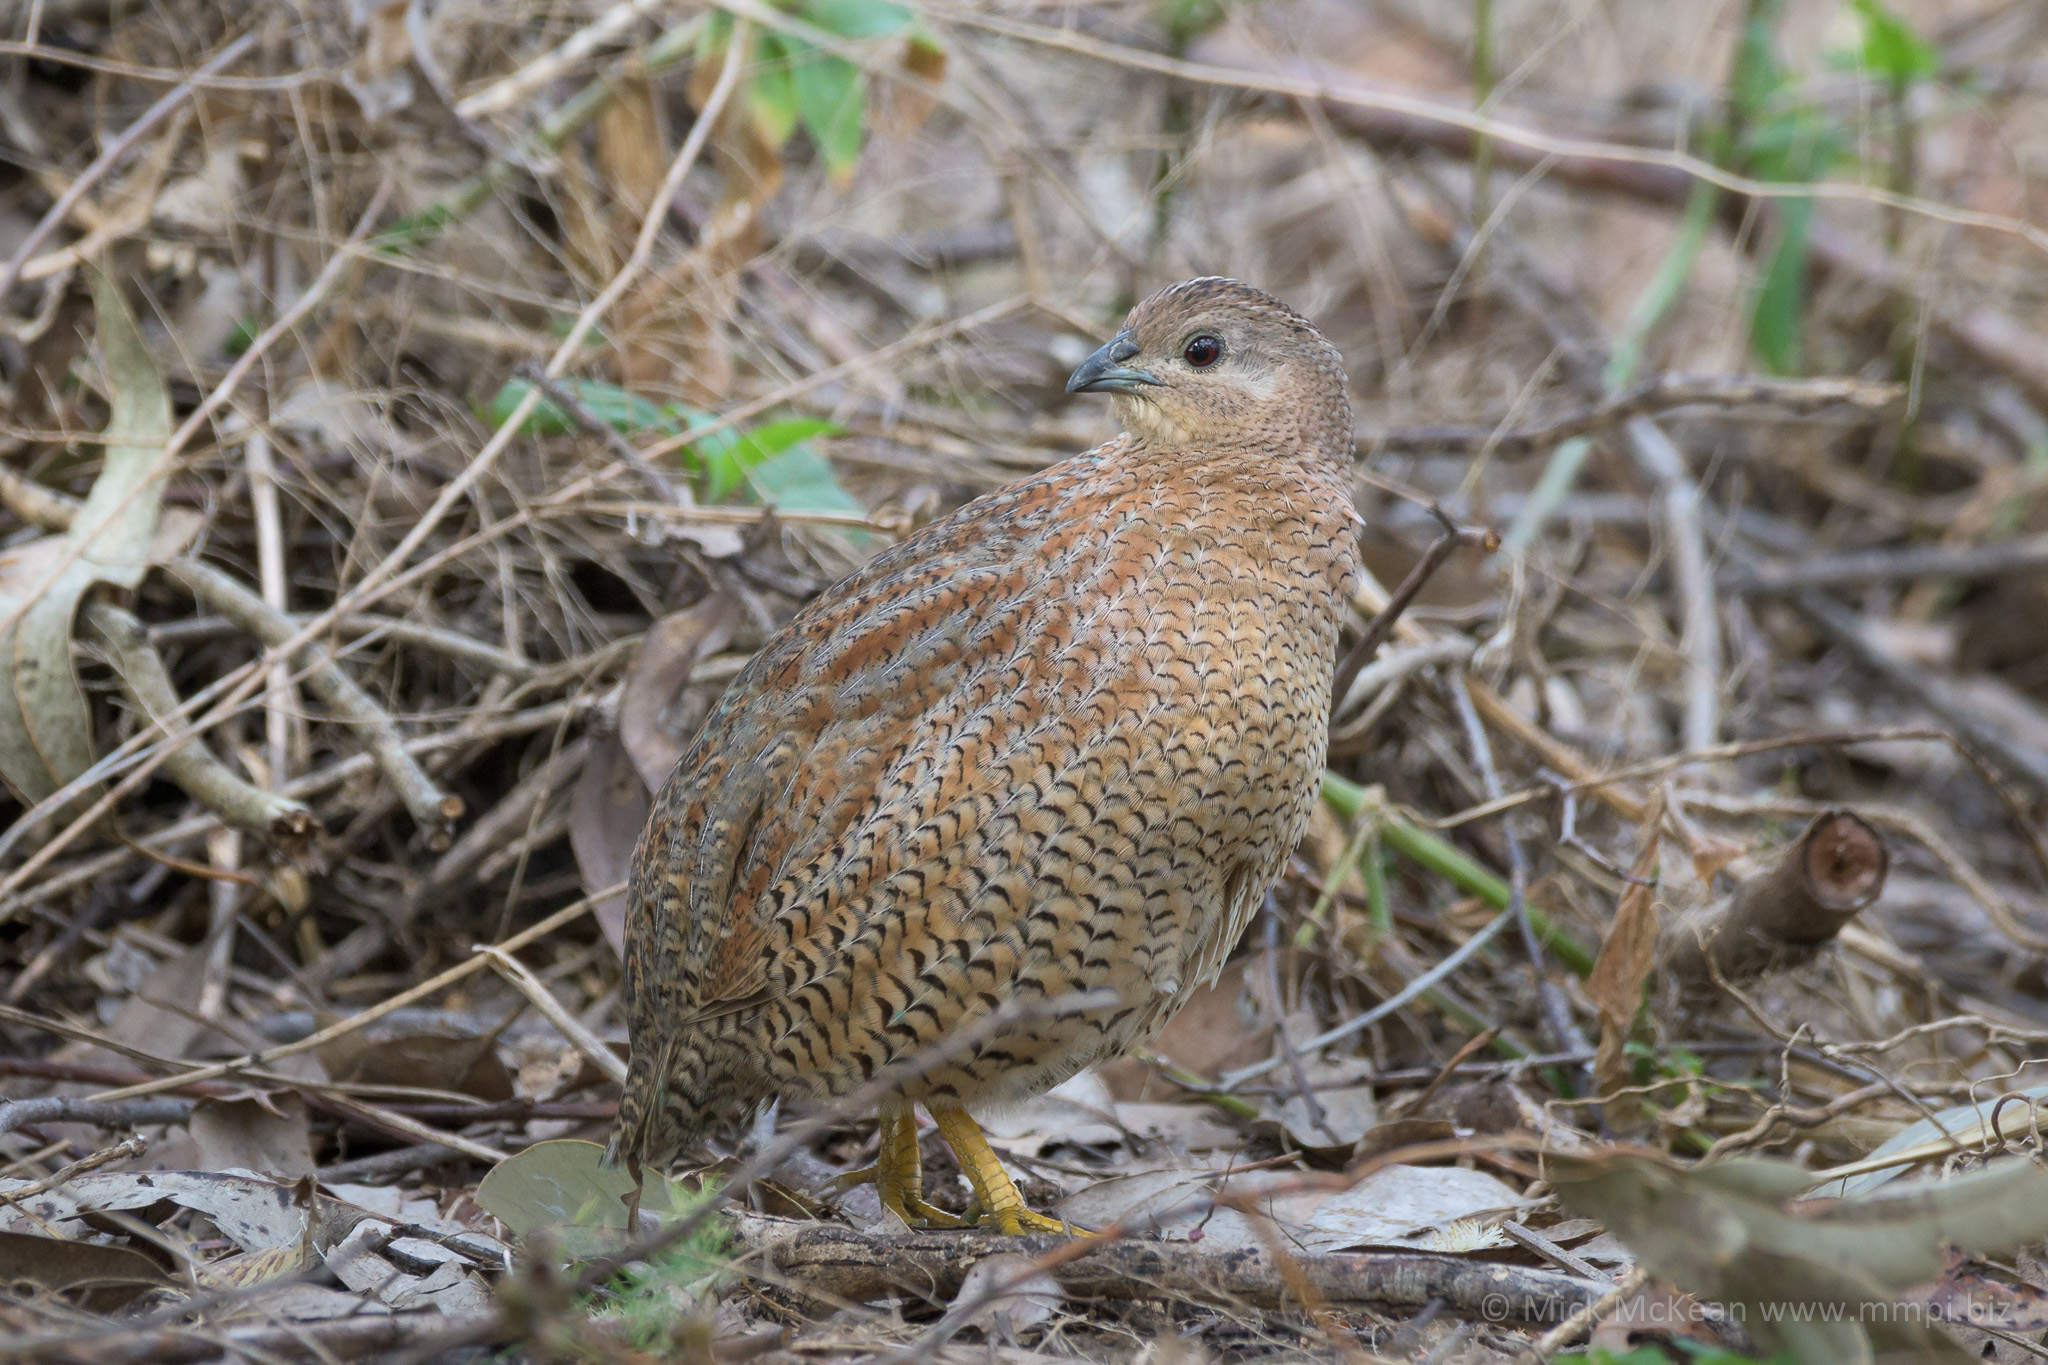 The Relaxed Brown Quail